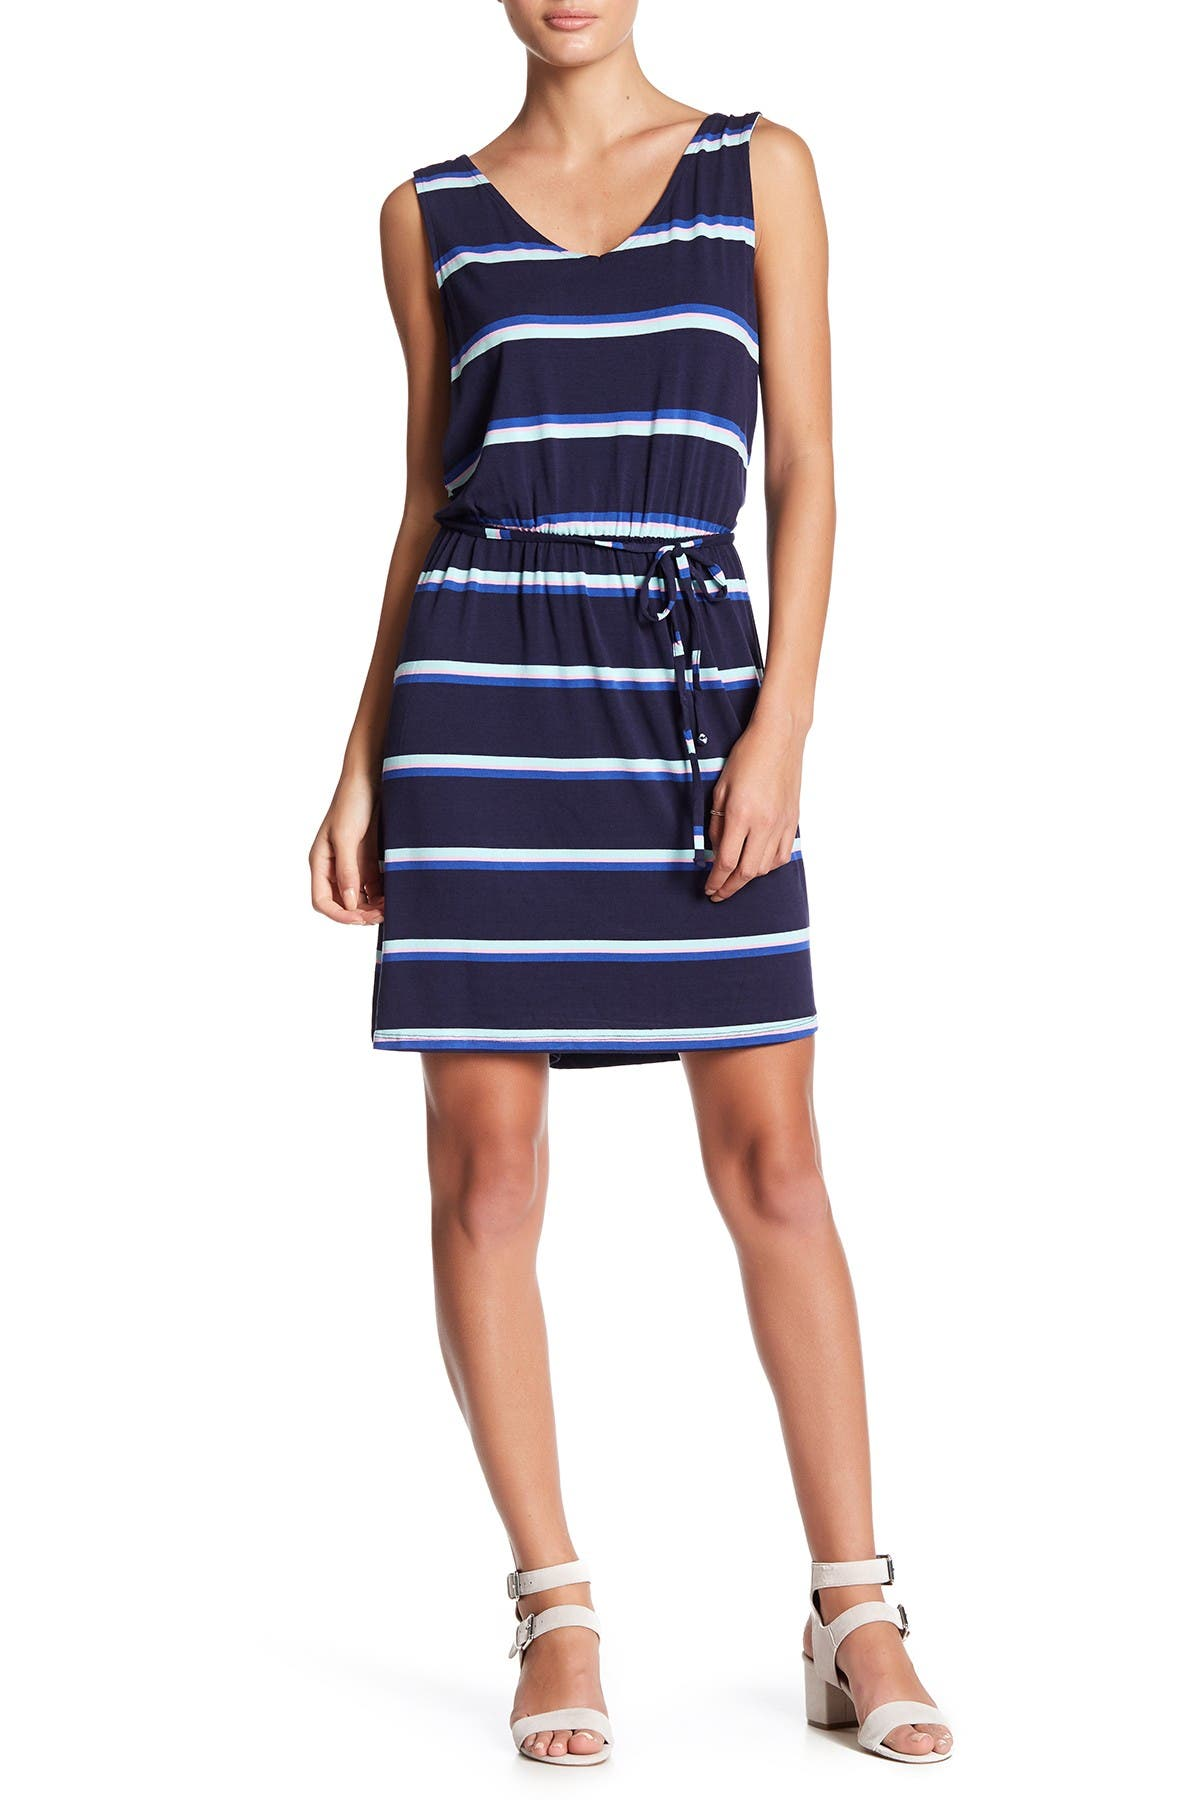 Image of 14TH PLACE Short Knit Dress